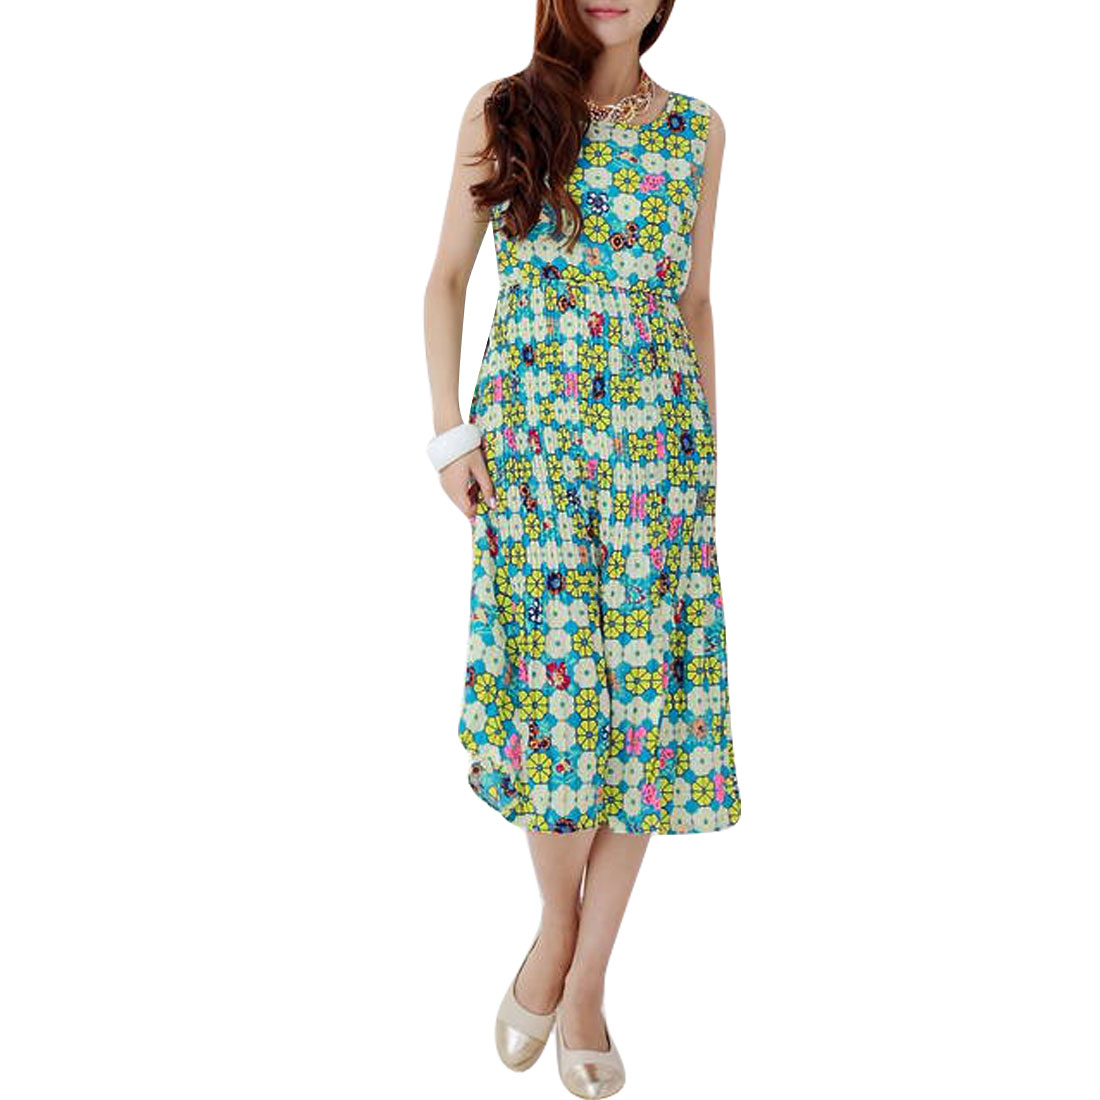 Ladies Round Neck Floral Prints Dress Turquoise Yellow S